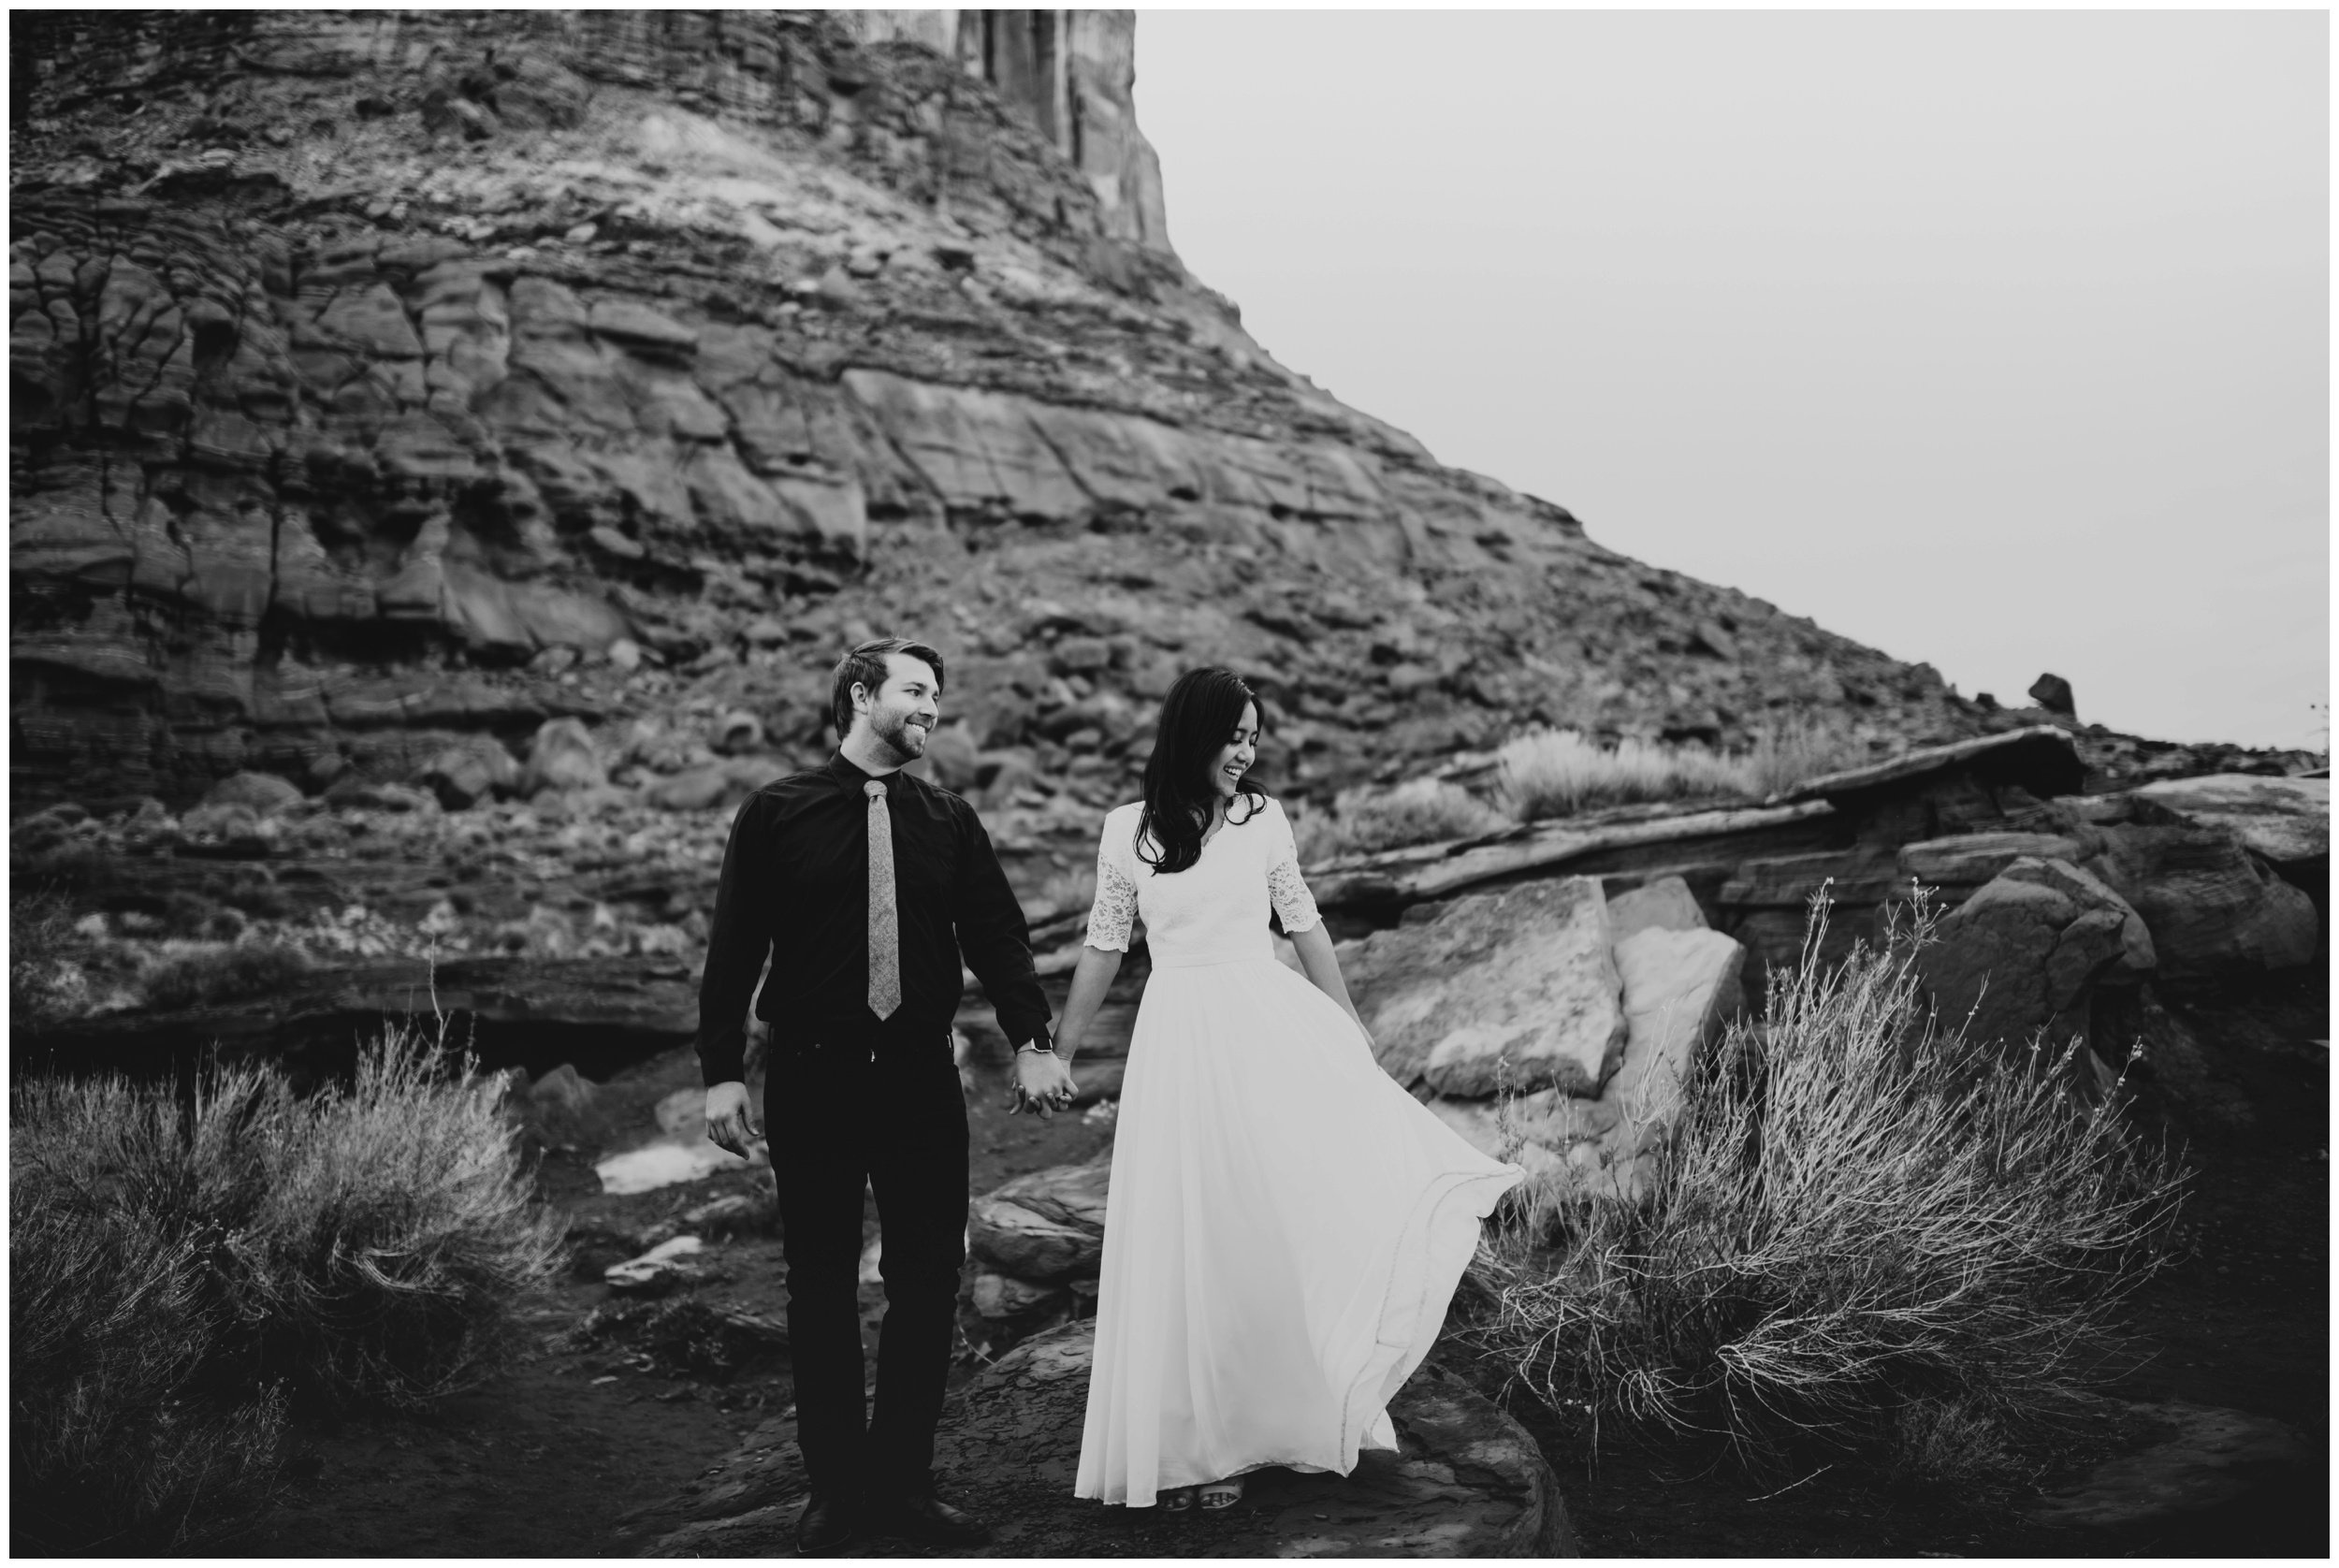 Groom looking at bride while bride plays with her dress while standing on rocks | Moab Utah, Photographer www.riversandroadsphotography.com